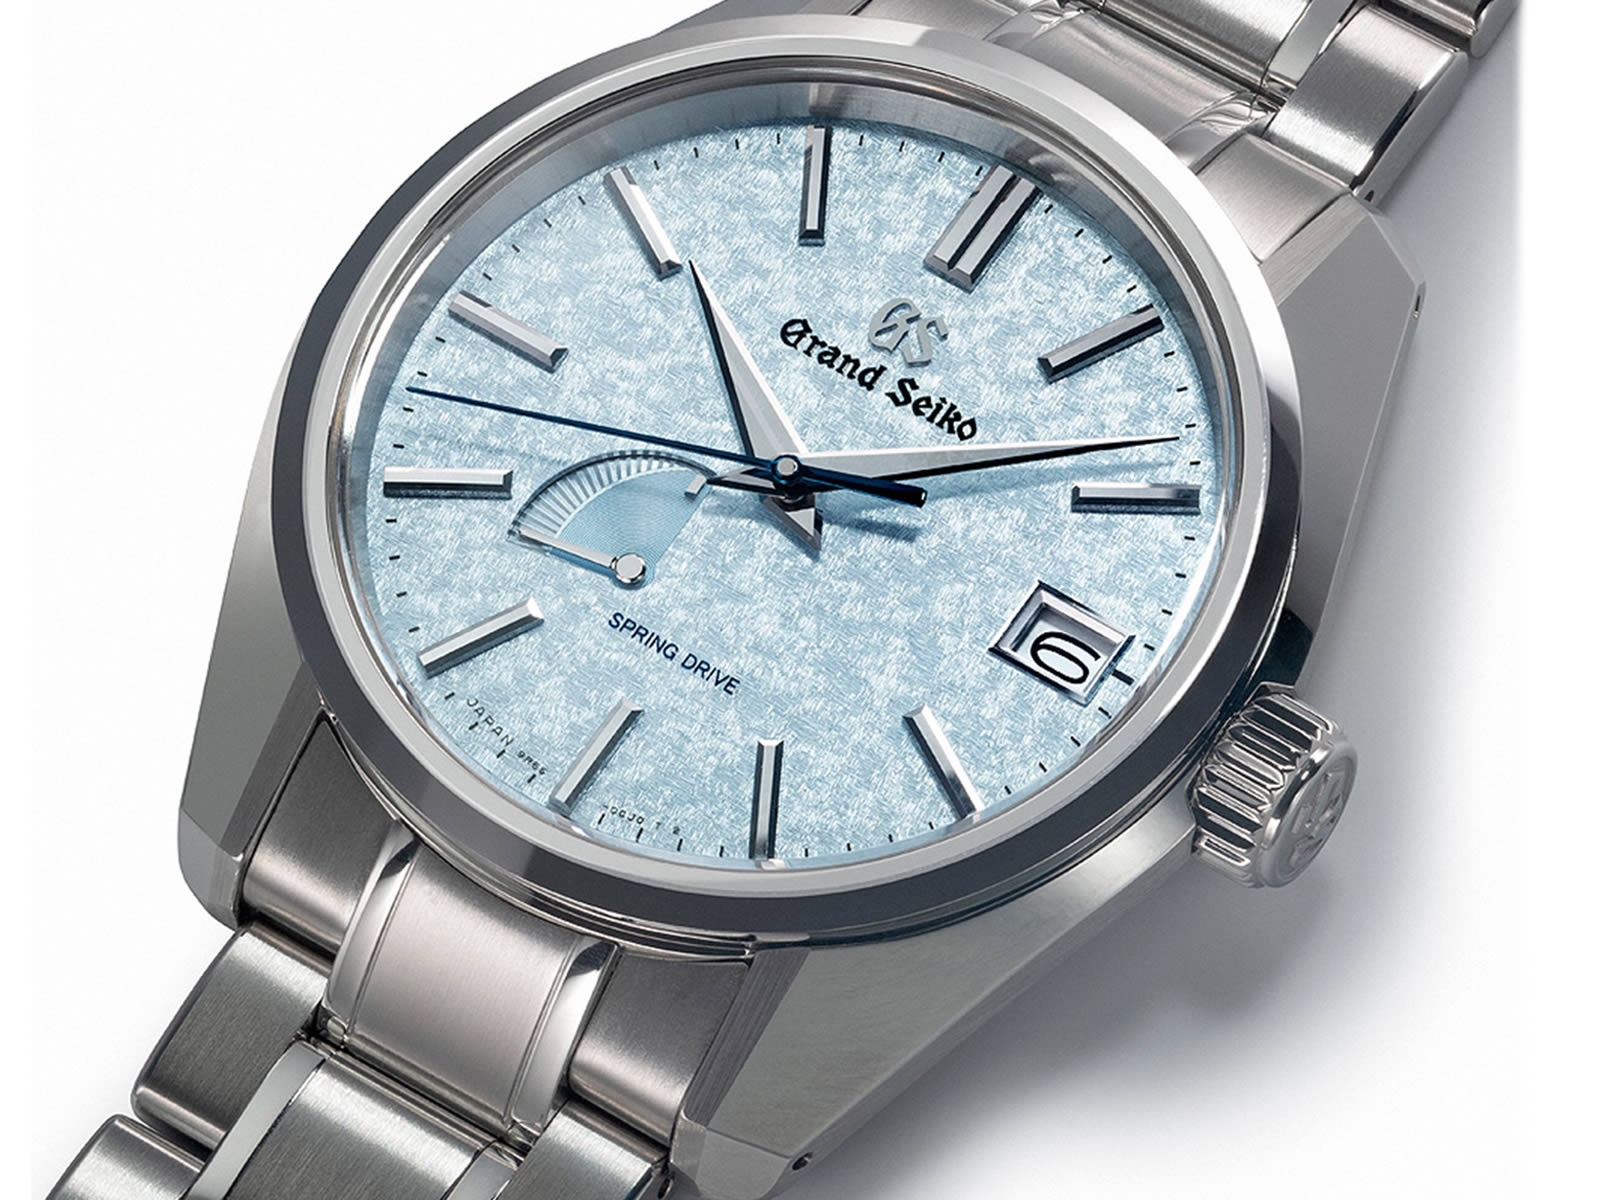 sbga387-grand-seiko-us-exclusive-limited-editions-2-.jpg